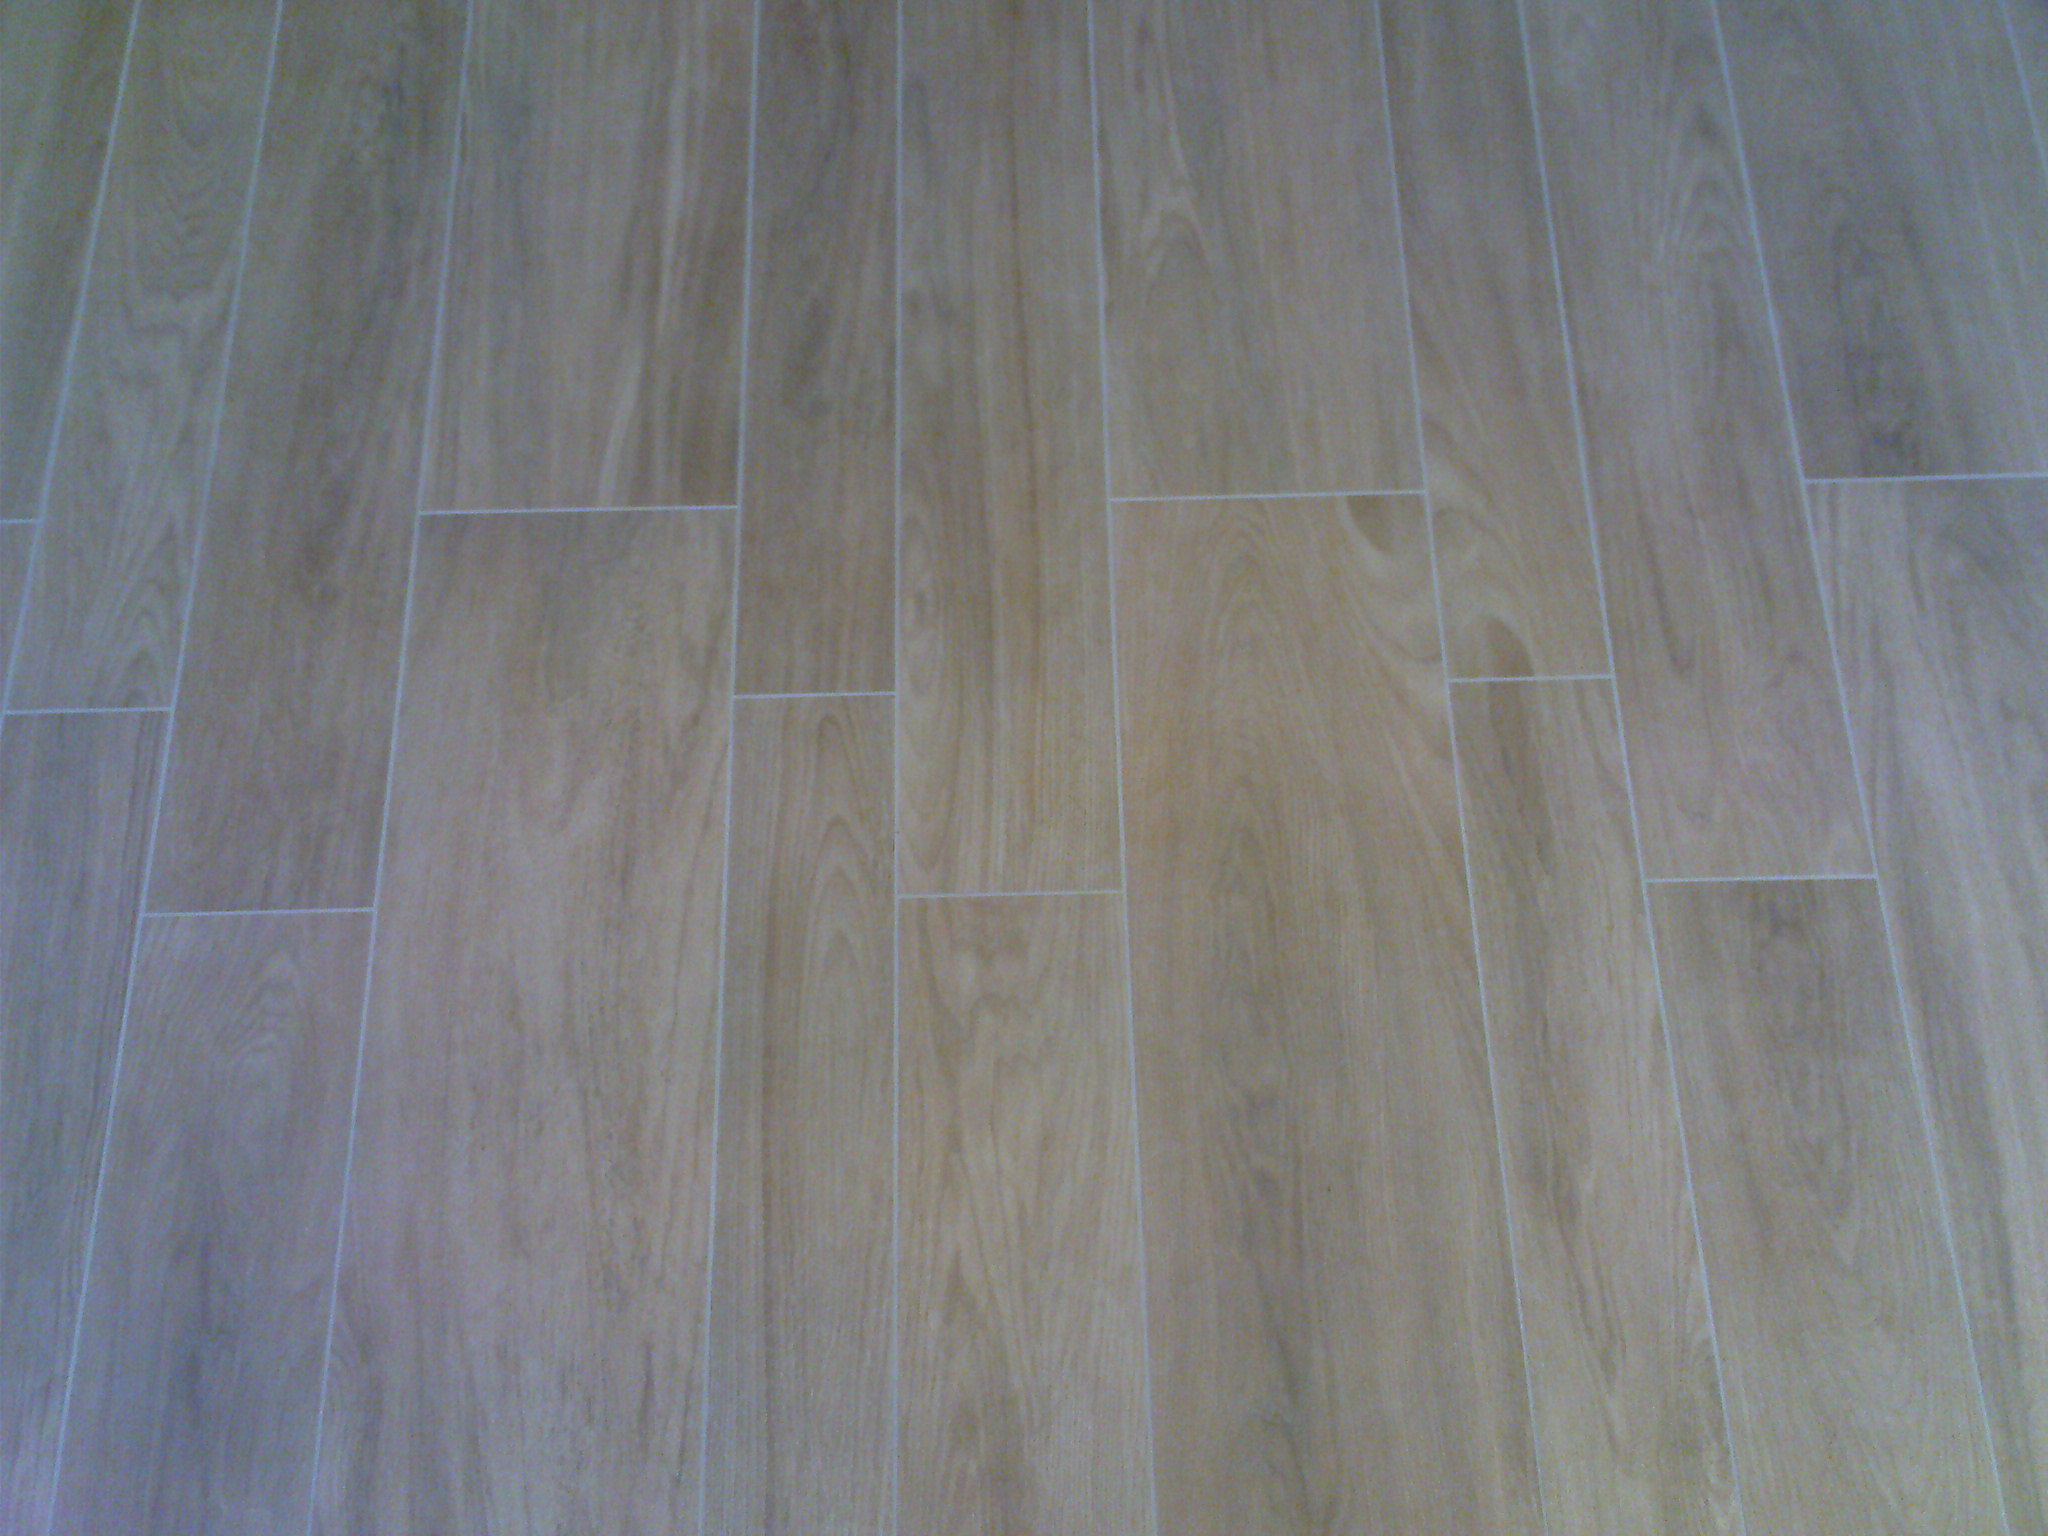 Carrelage design parquet sur carrelage moderne design for Parquet carrelage